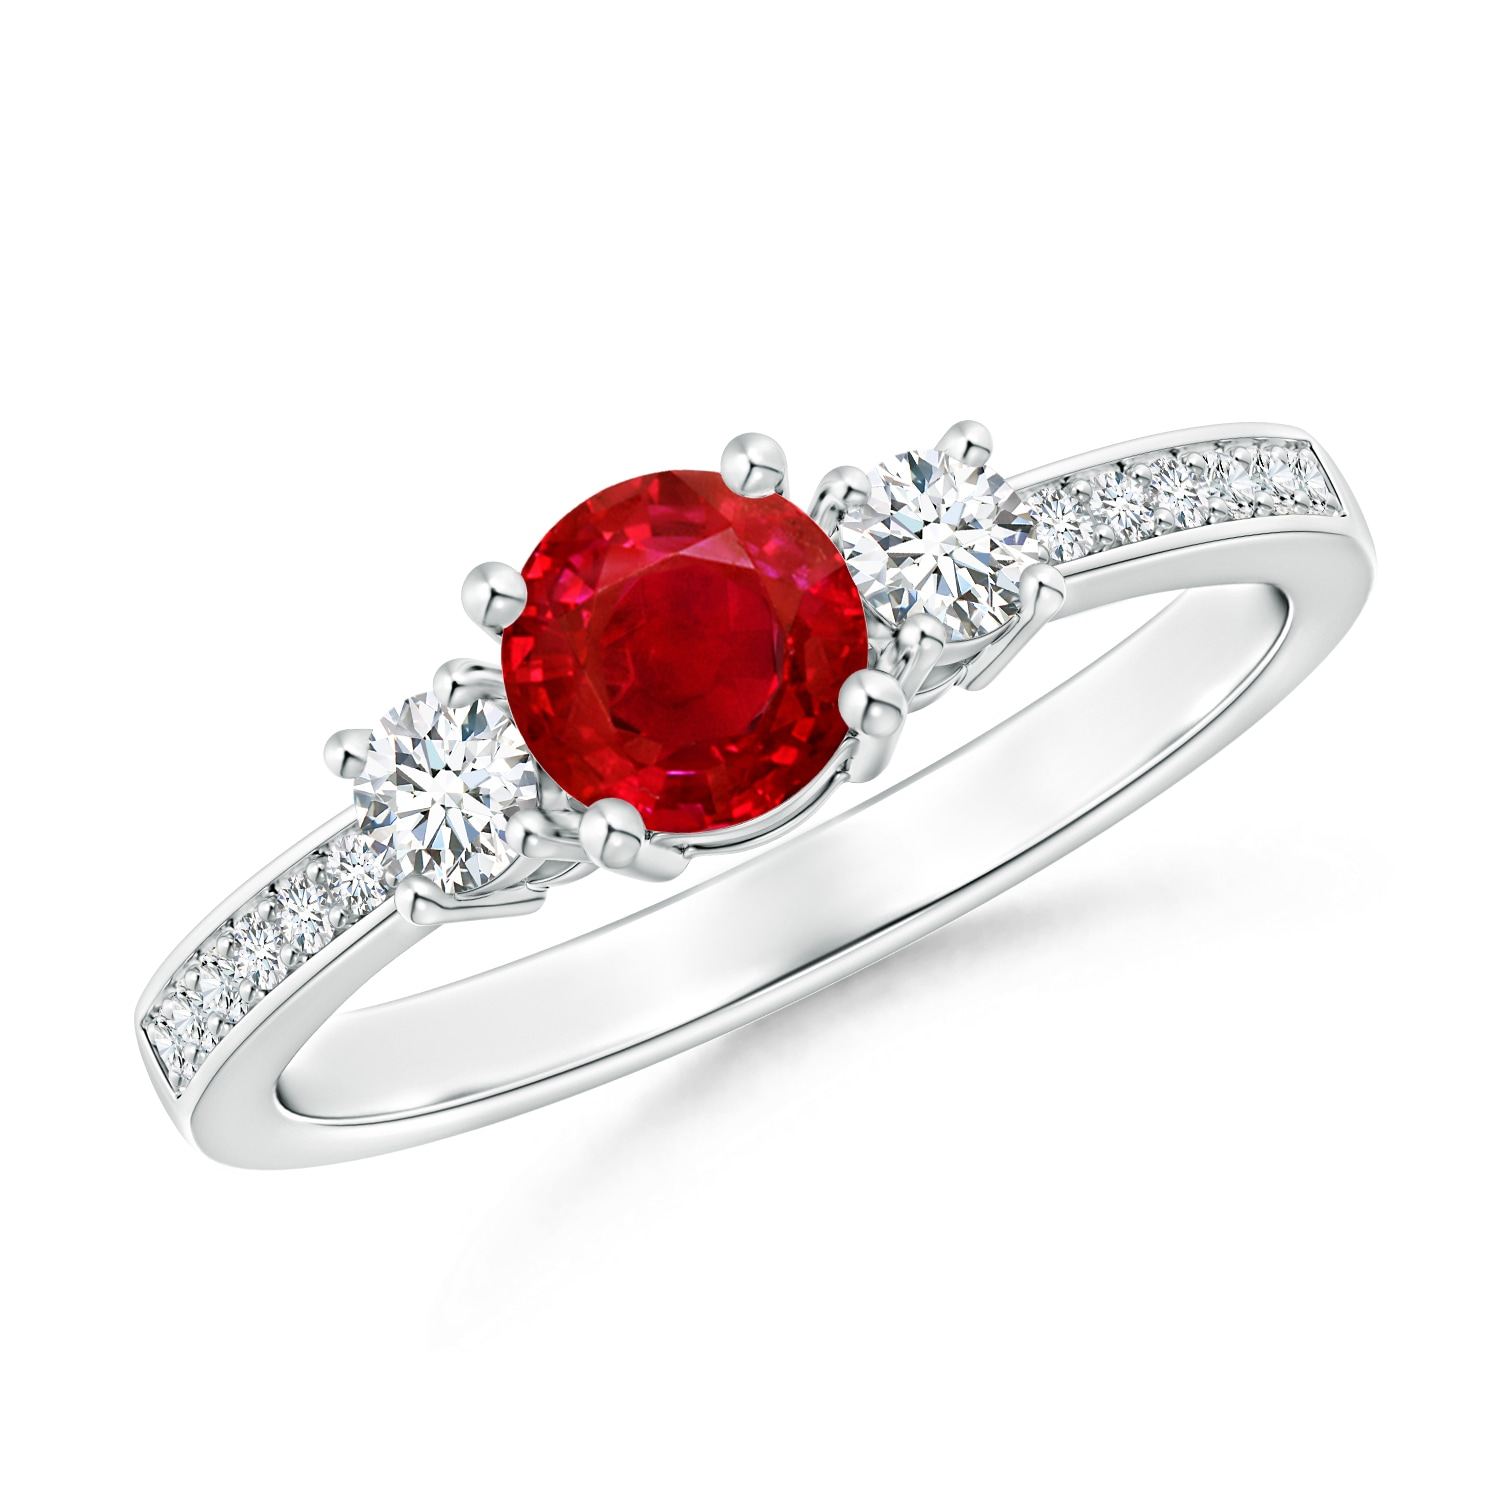 Angara Oval Ruby and Diamond Three Stone Ring in 14K White Gold xtqmEInVhk